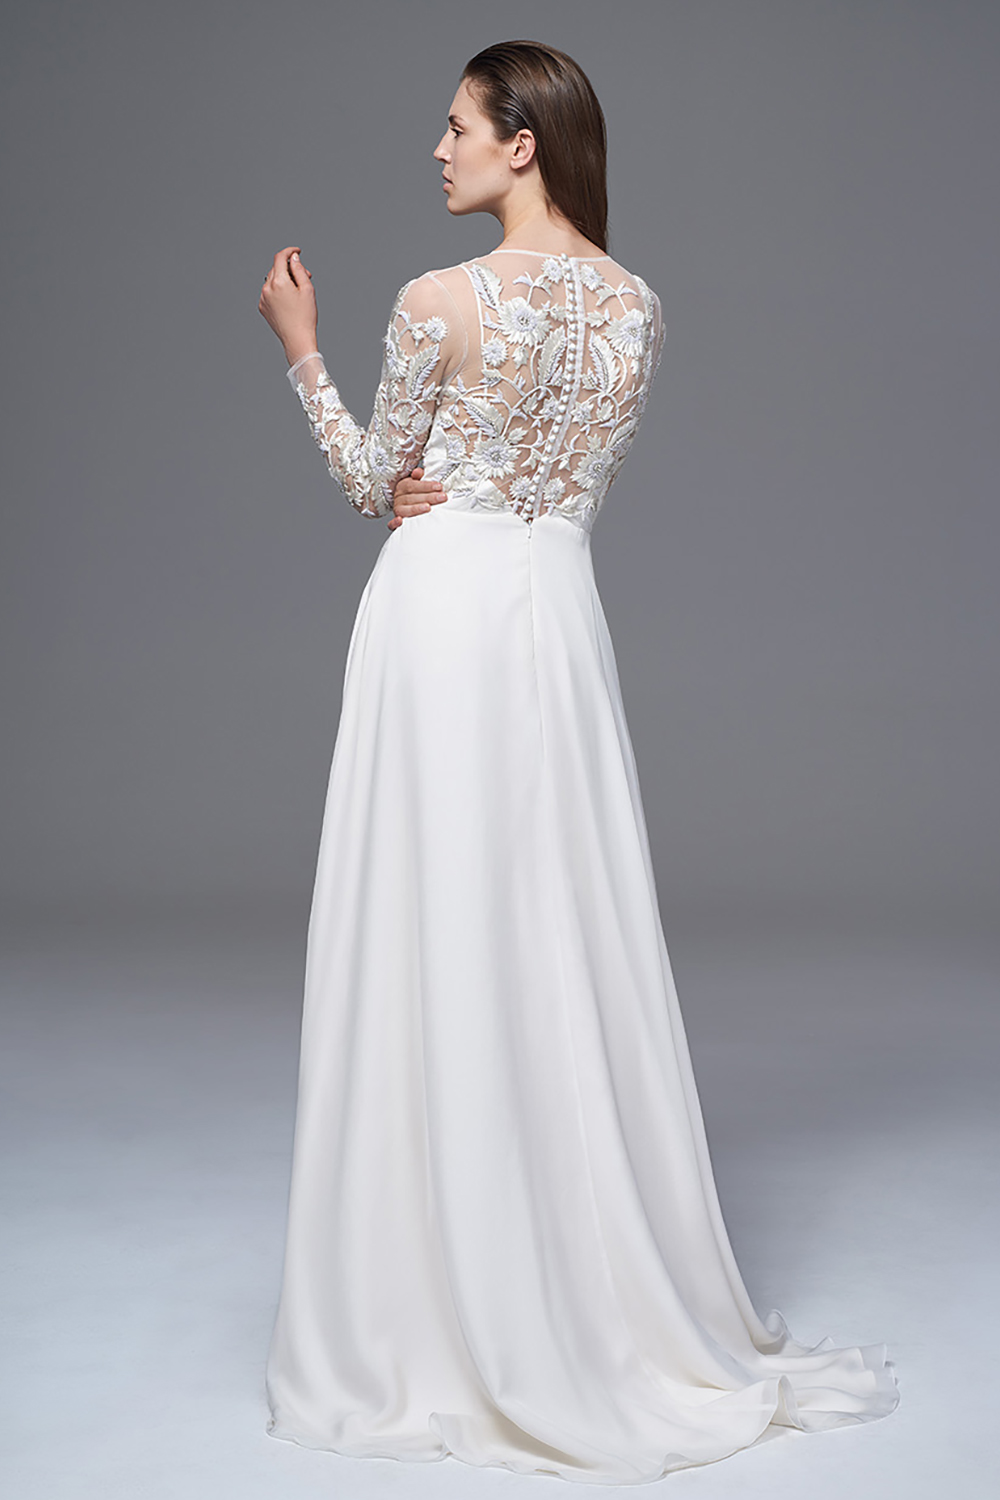 THE SYLVIE LONG SLEEVED DRESS WITH HAND CRAFTED 3D DIAMONTE AND EMBROIDERED BODICE WITH SATIN BUTTONS AND A SILK CHIFFON SKIRT. BRIDAL WEDDING DRESS BY HALFPENNY LONDON